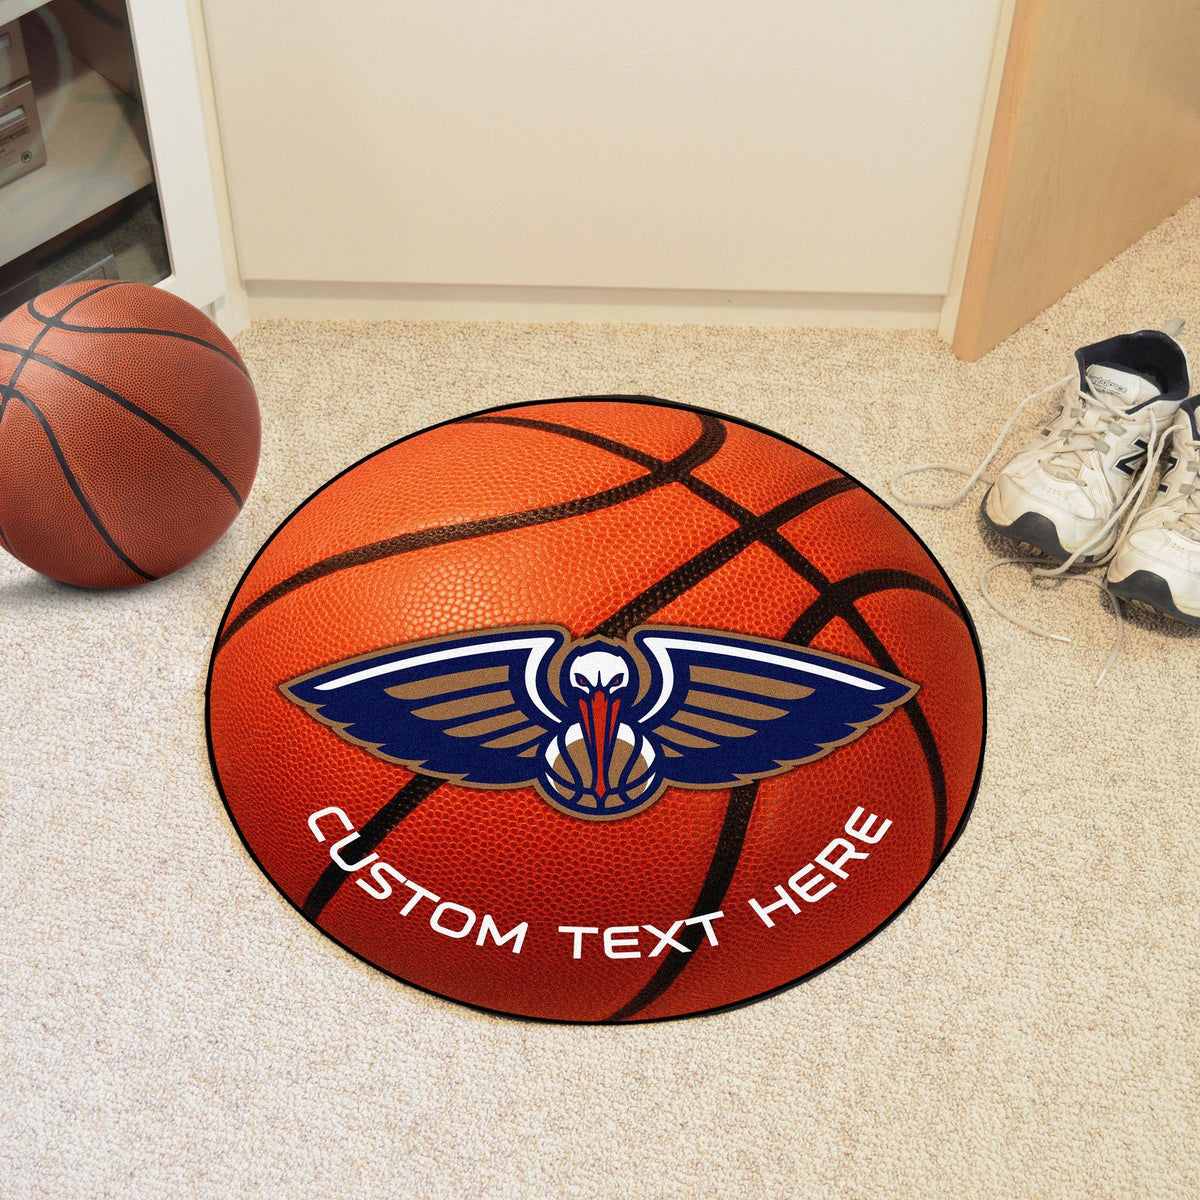 NBA Personalized Basketball Mat Personalized Basketball Mat Fan Mats New Orleans Pelicans